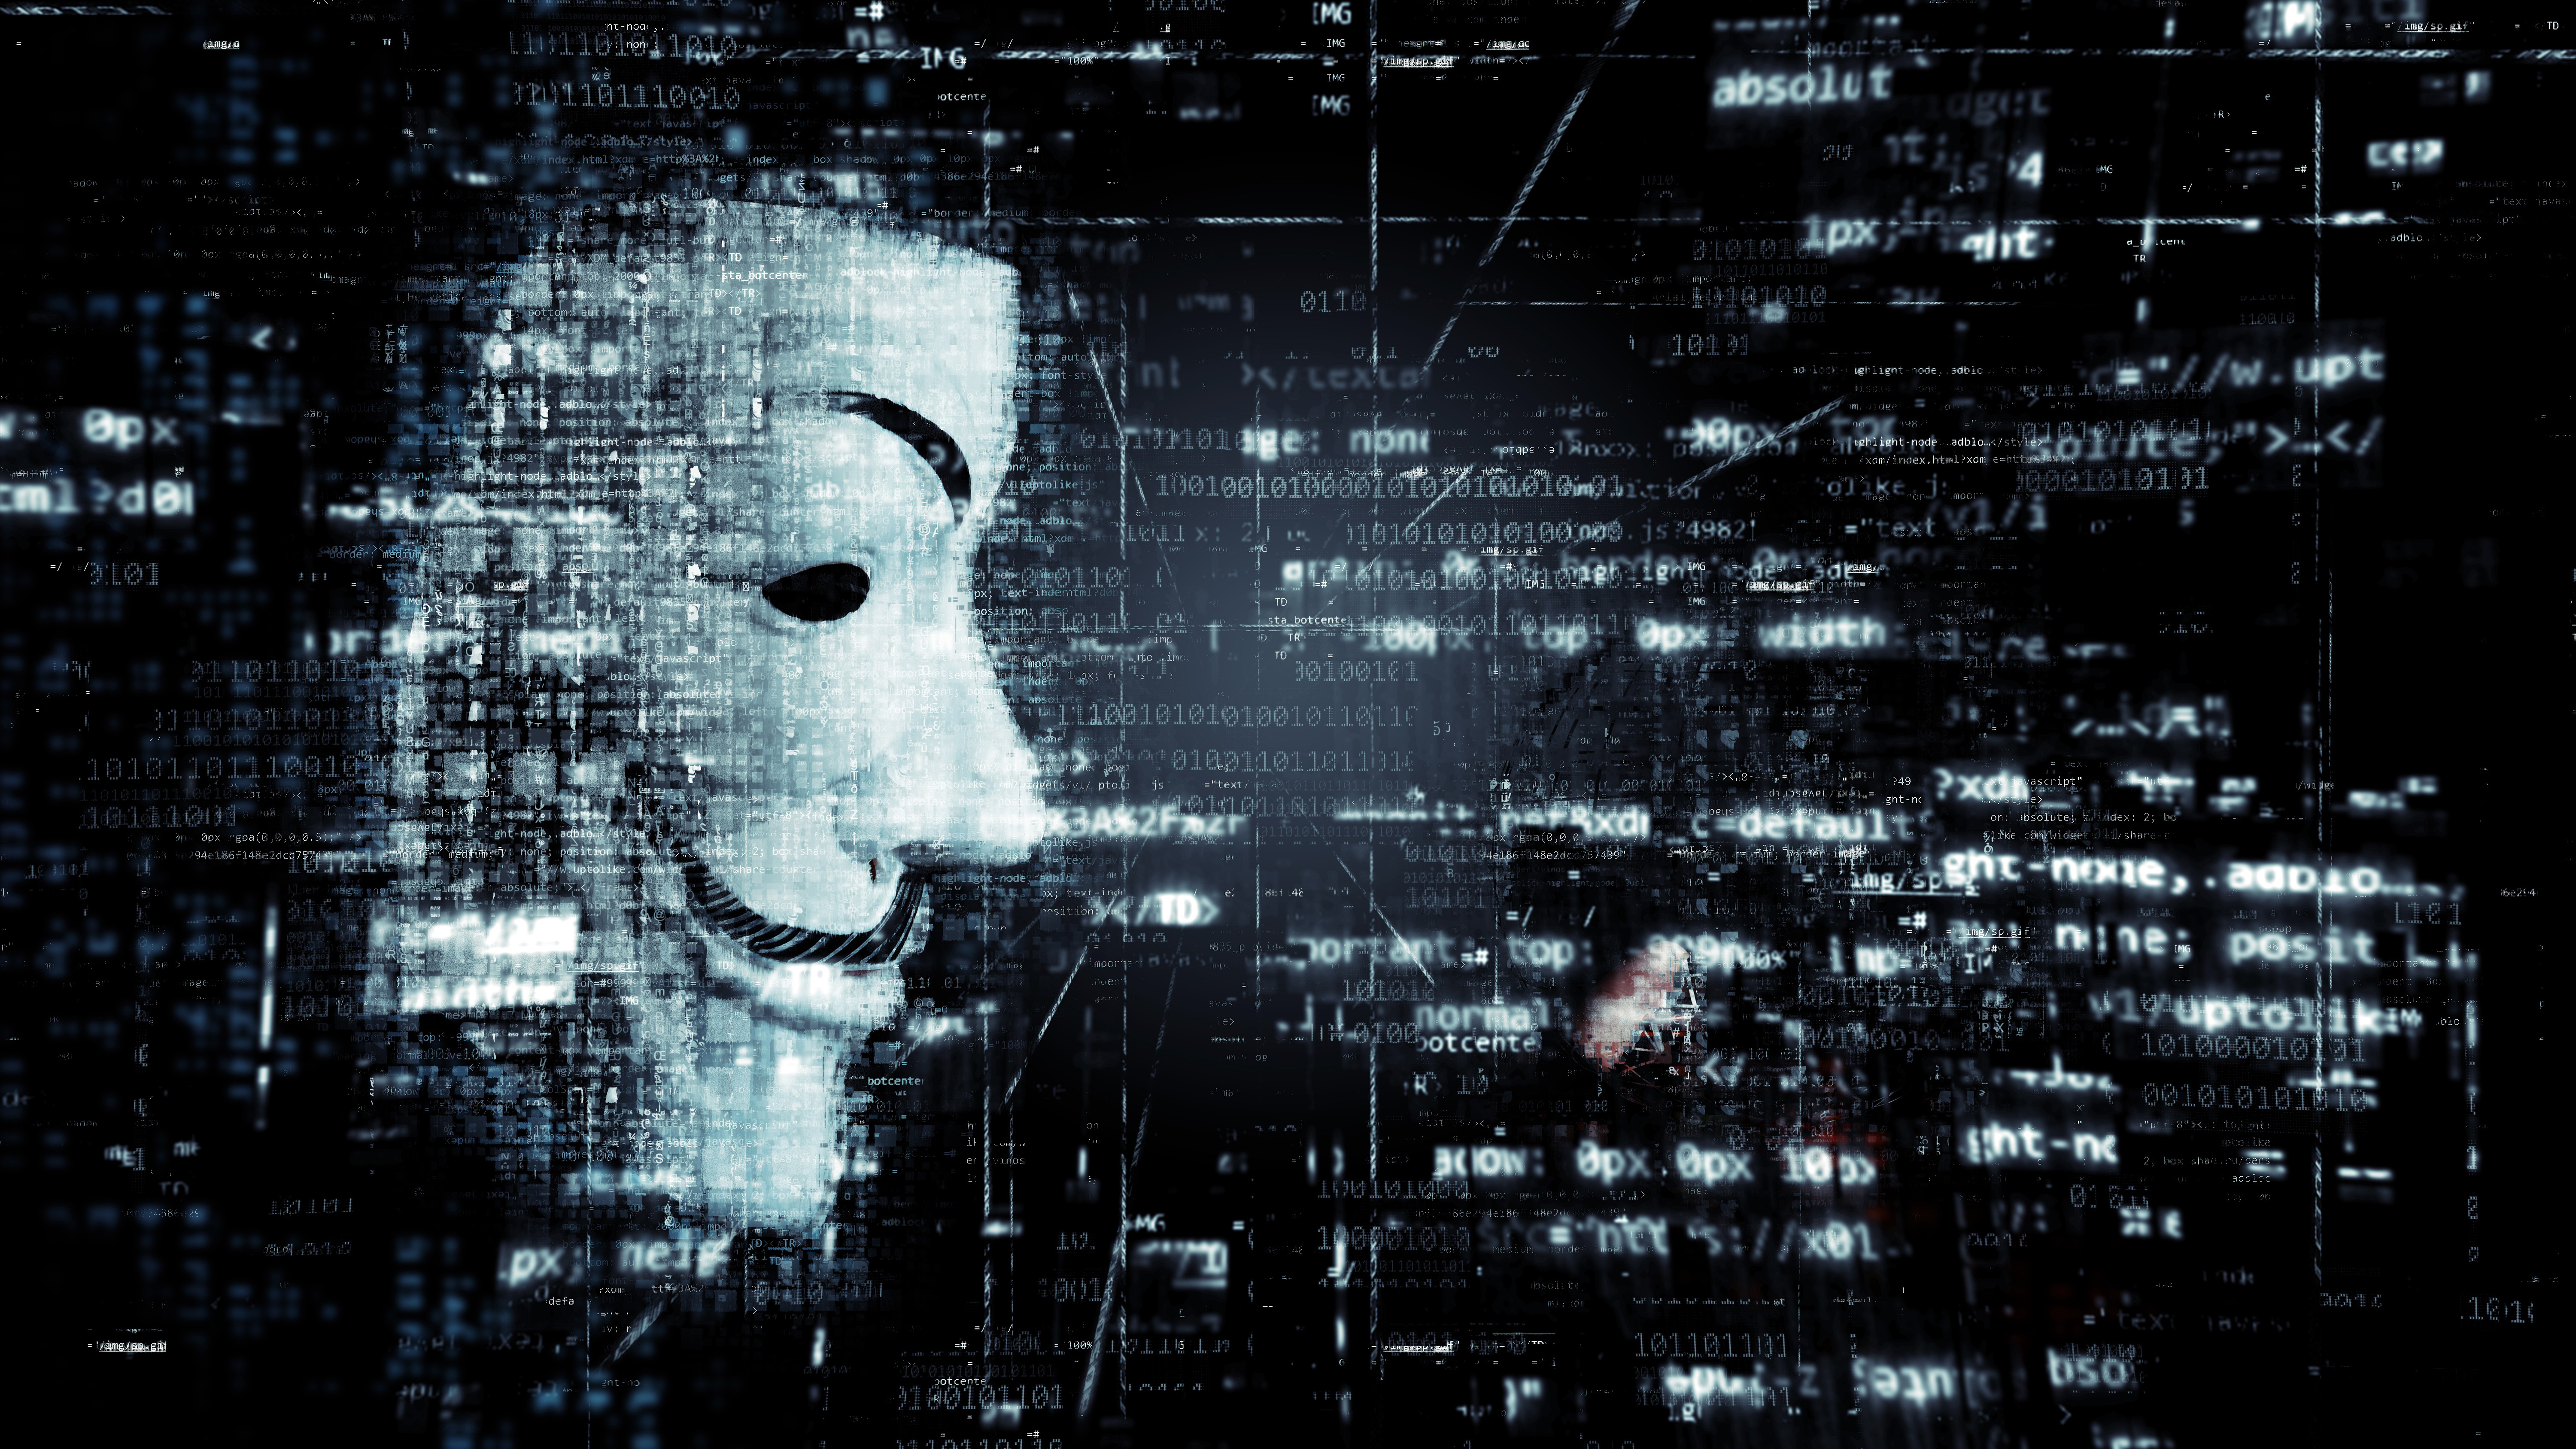 Awesome Hacker Wallpaper 4k Hd For Laptop Images